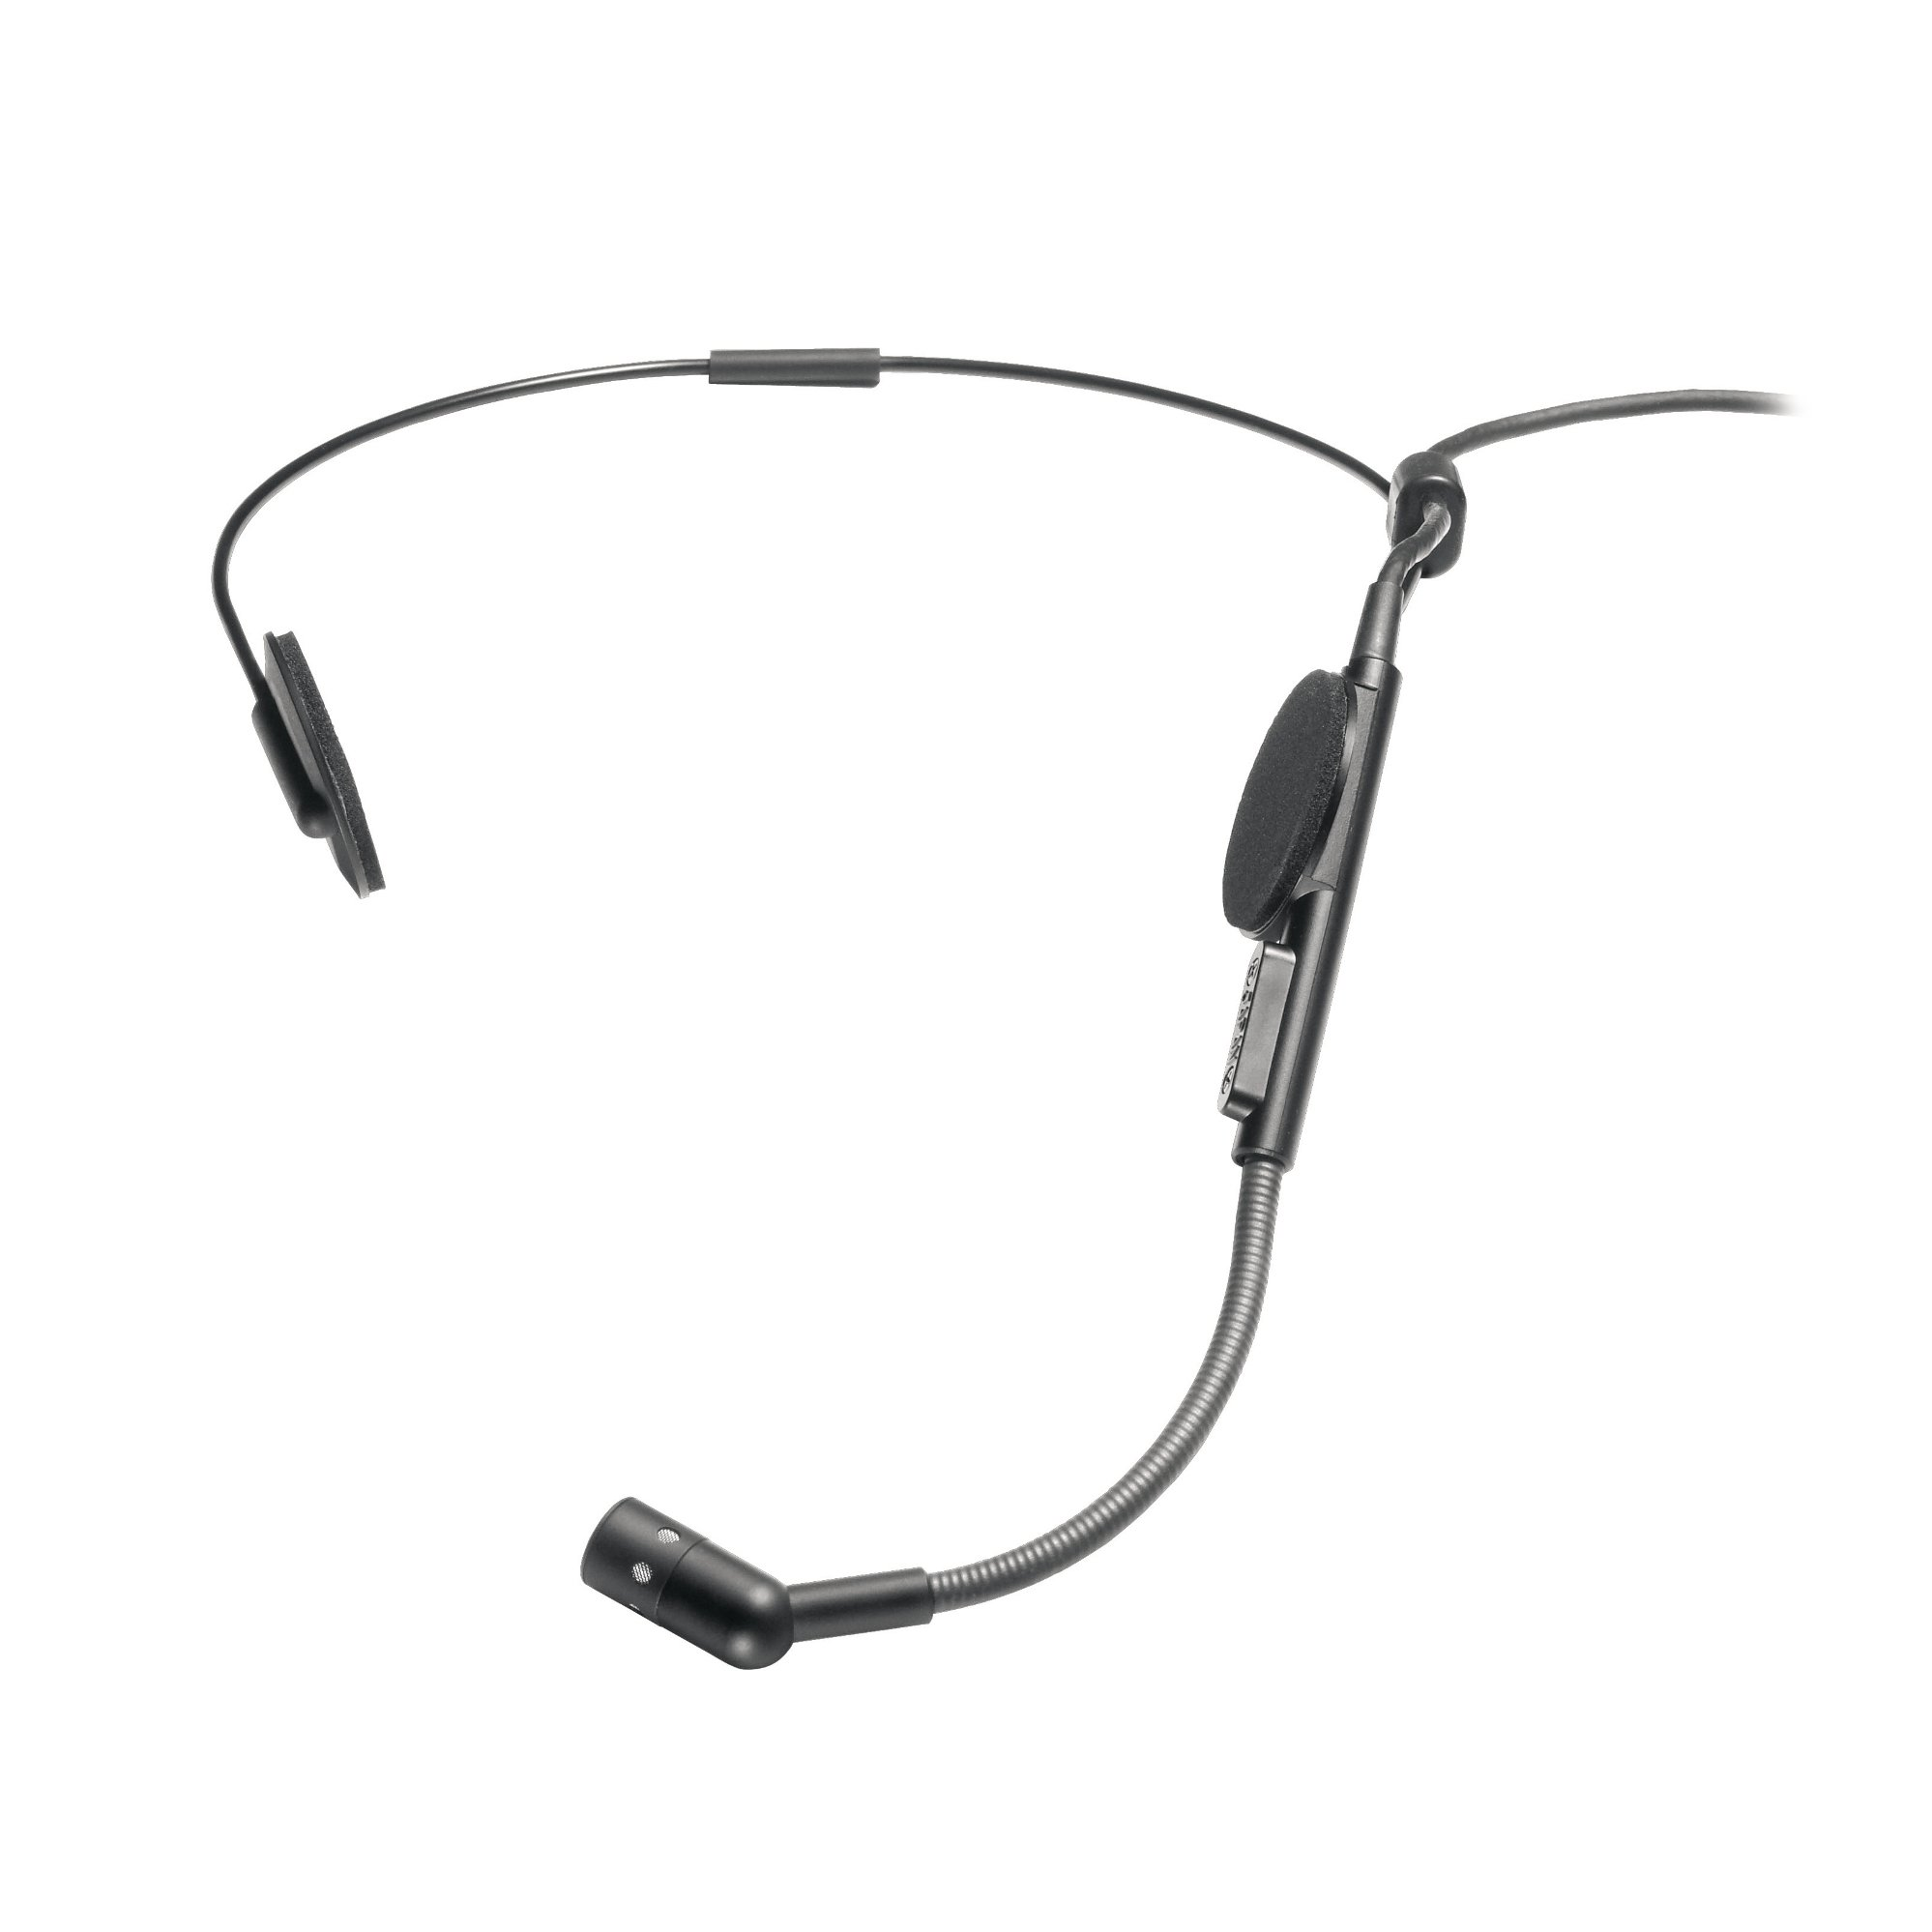 """Audio-Technica ATM73cW Cardioid Condenser Headworn Microphone, 55"""" Cable Terminated with Locking 4-pin Connector for A-T UniPak Wireless Systems ATM73CW"""